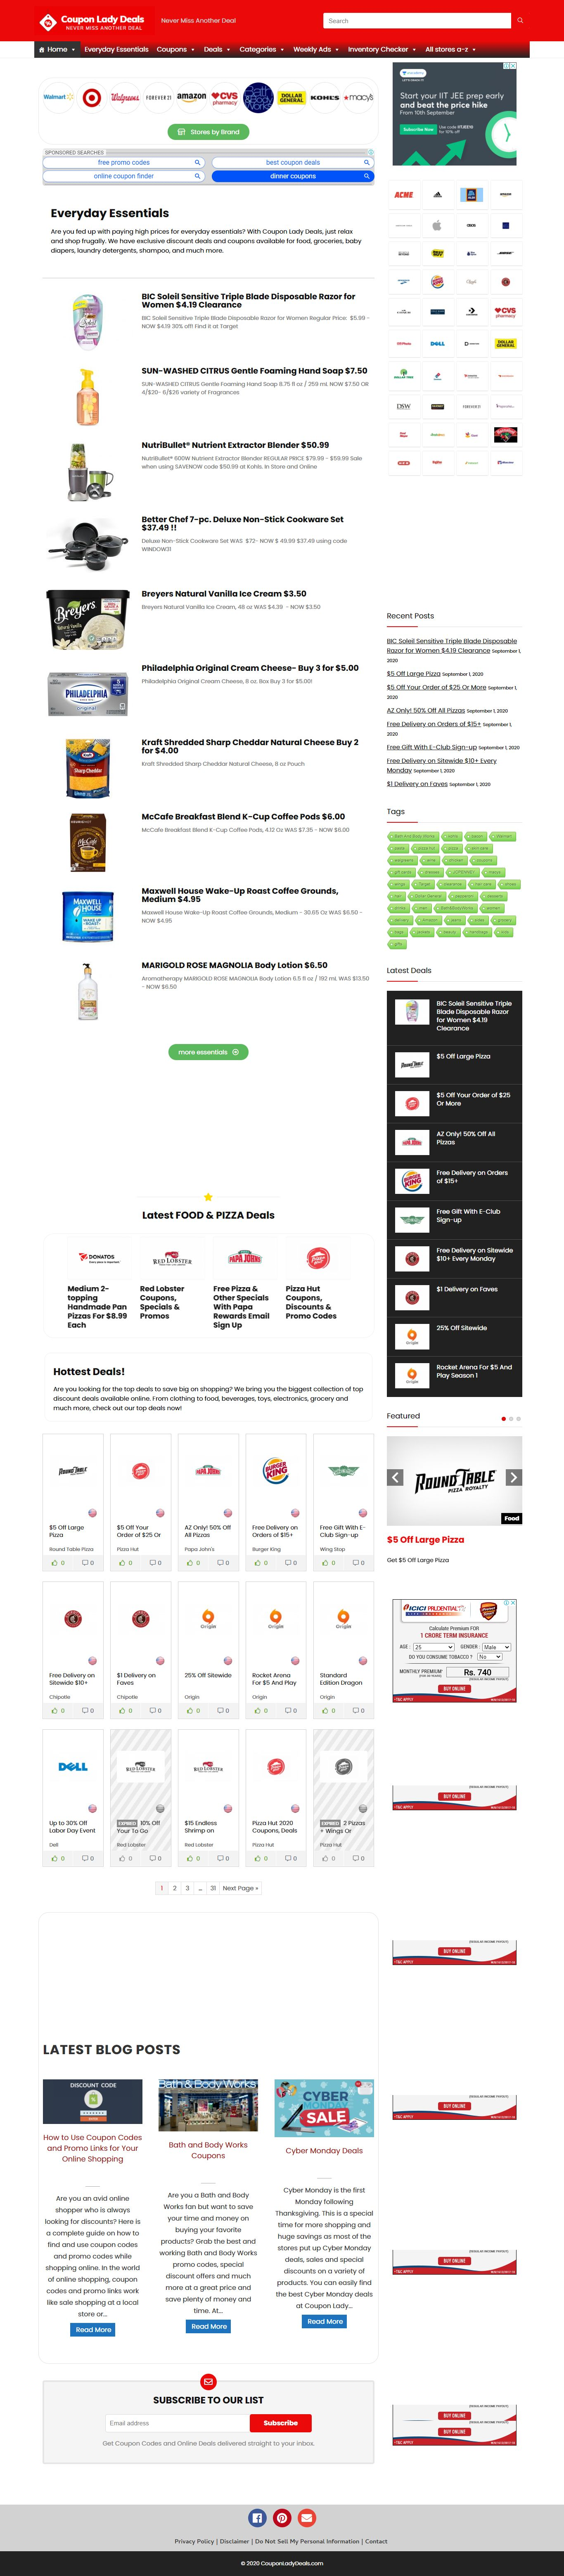 online red lobster coupons in 2020 | Pizza hut coupon ...